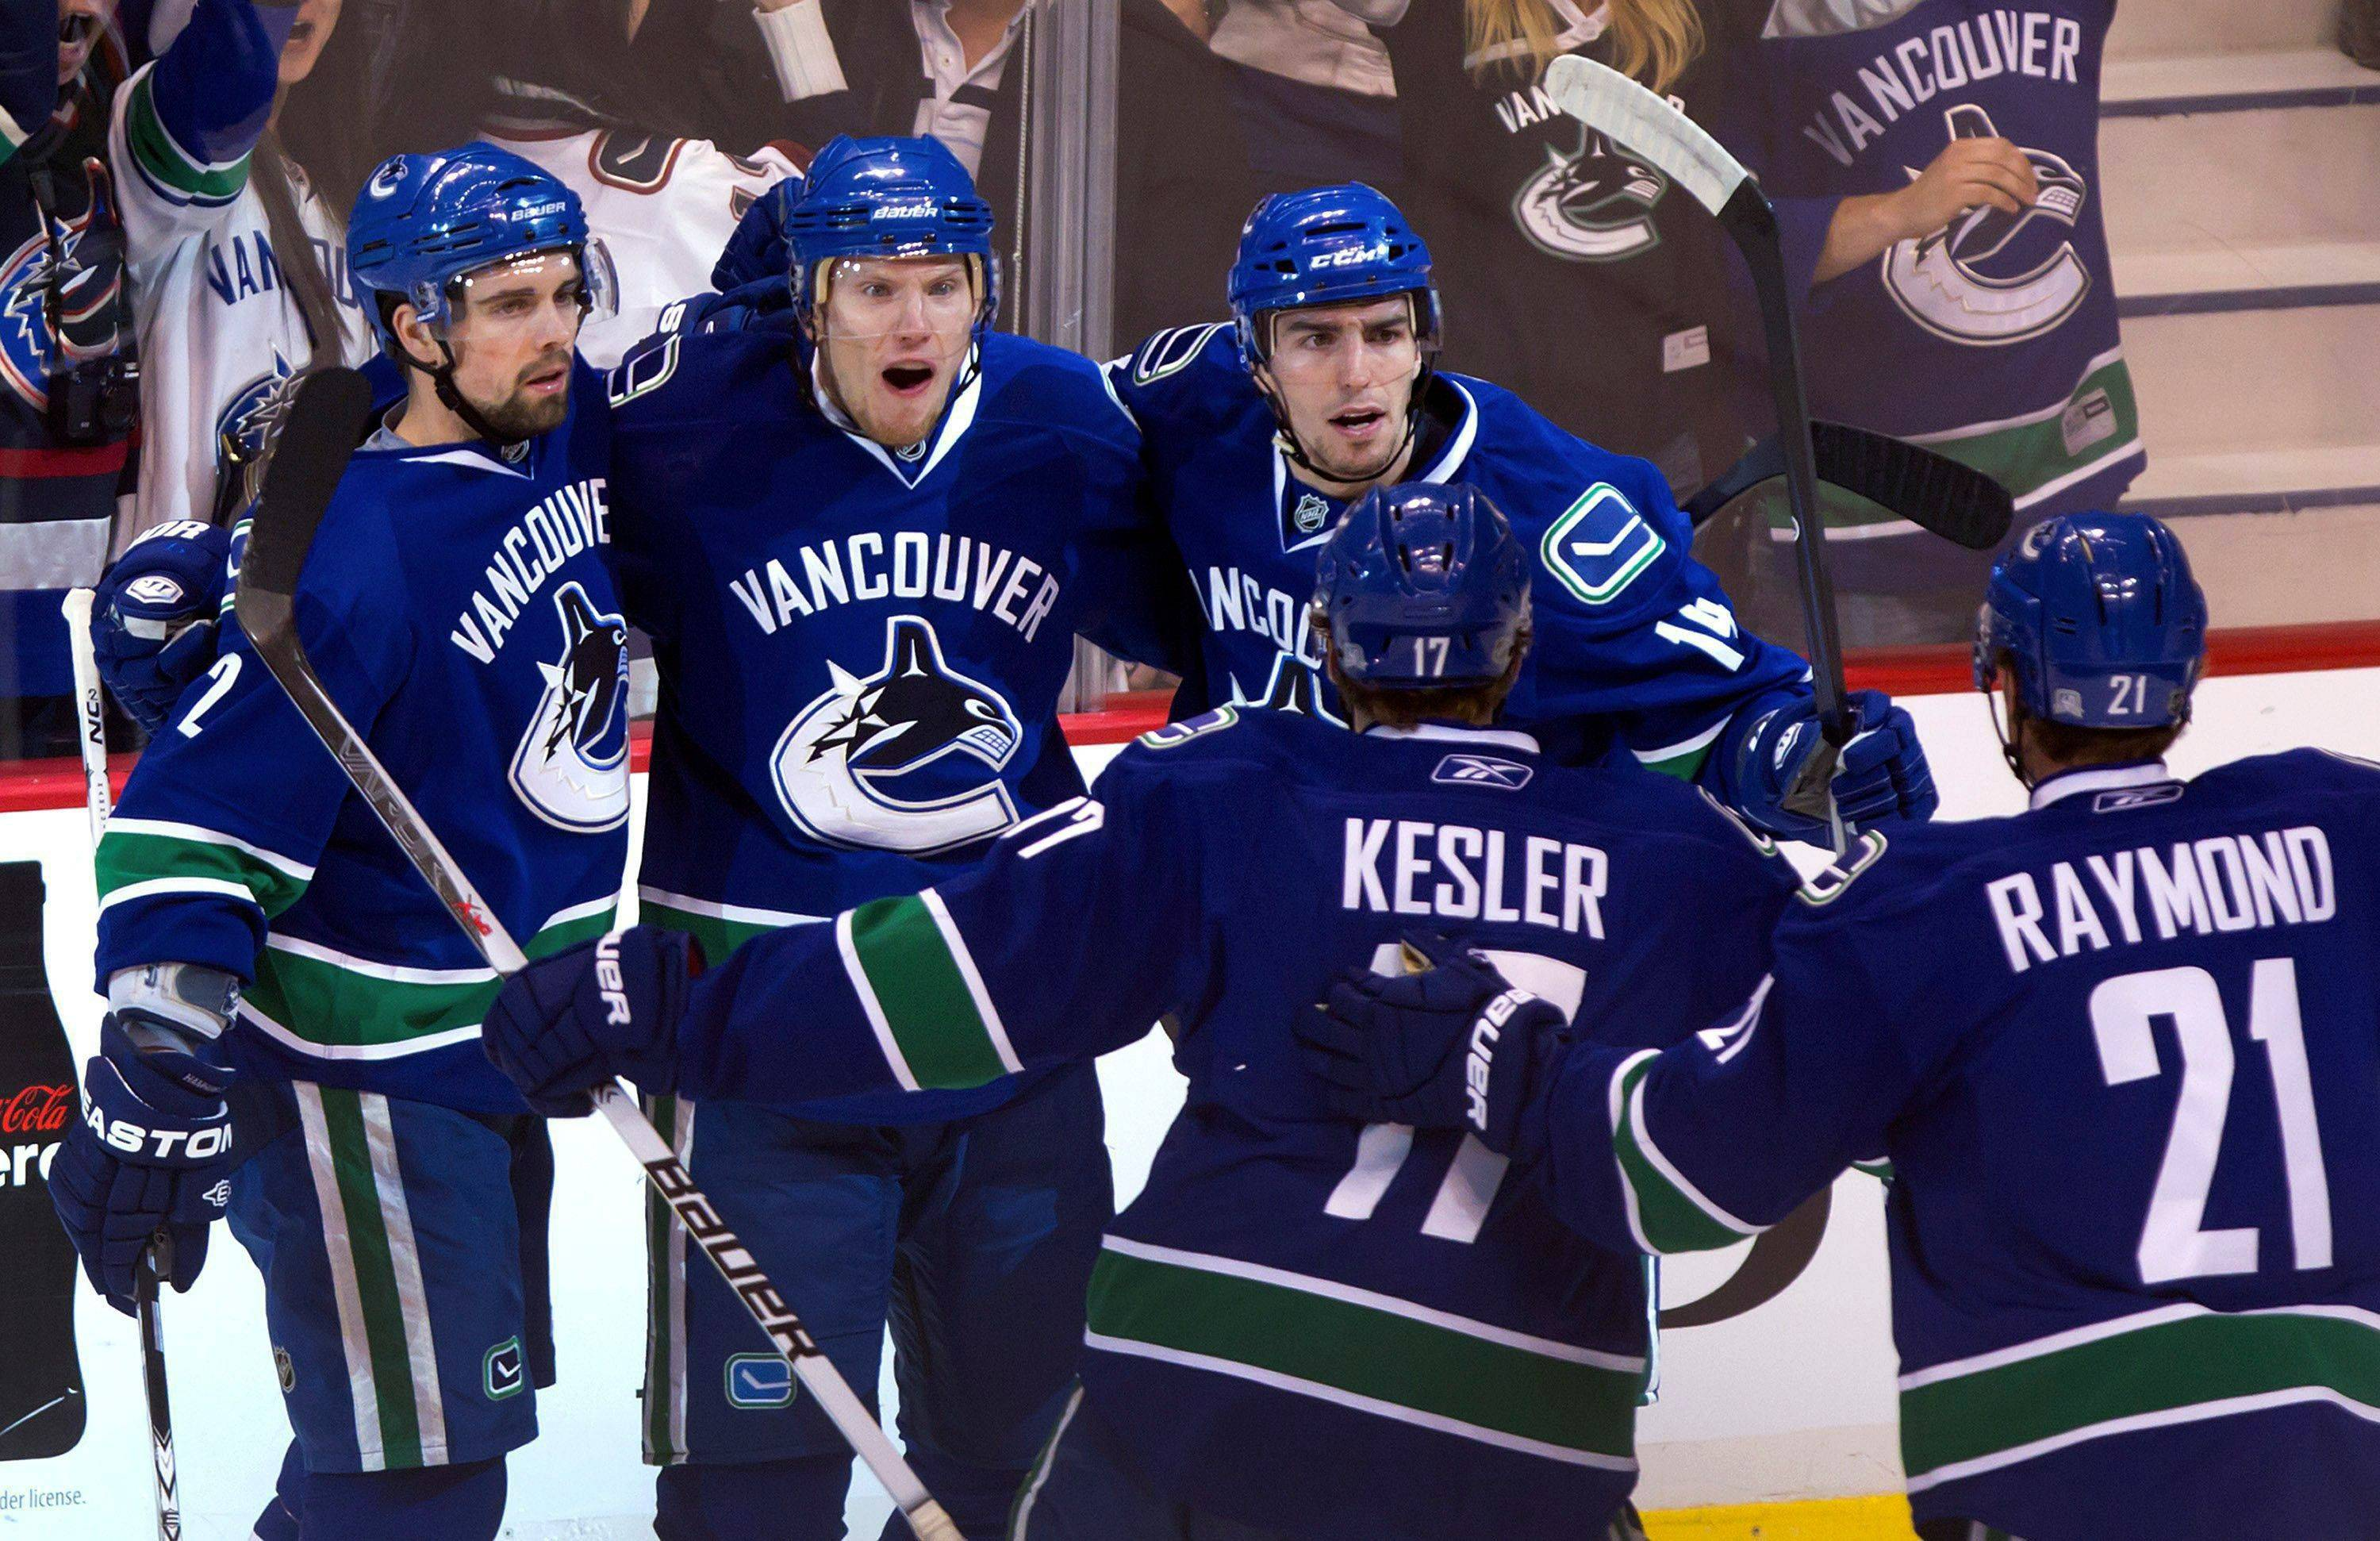 Vancouver Canucks' Dan Hamhuis, Christian Ehrhoff, Alex Burrows, Ryan Kesler and Mason Raymond celebrate Burrows' goal against the Chicago Blackhawks during the first period of Game 7 Tuesday.